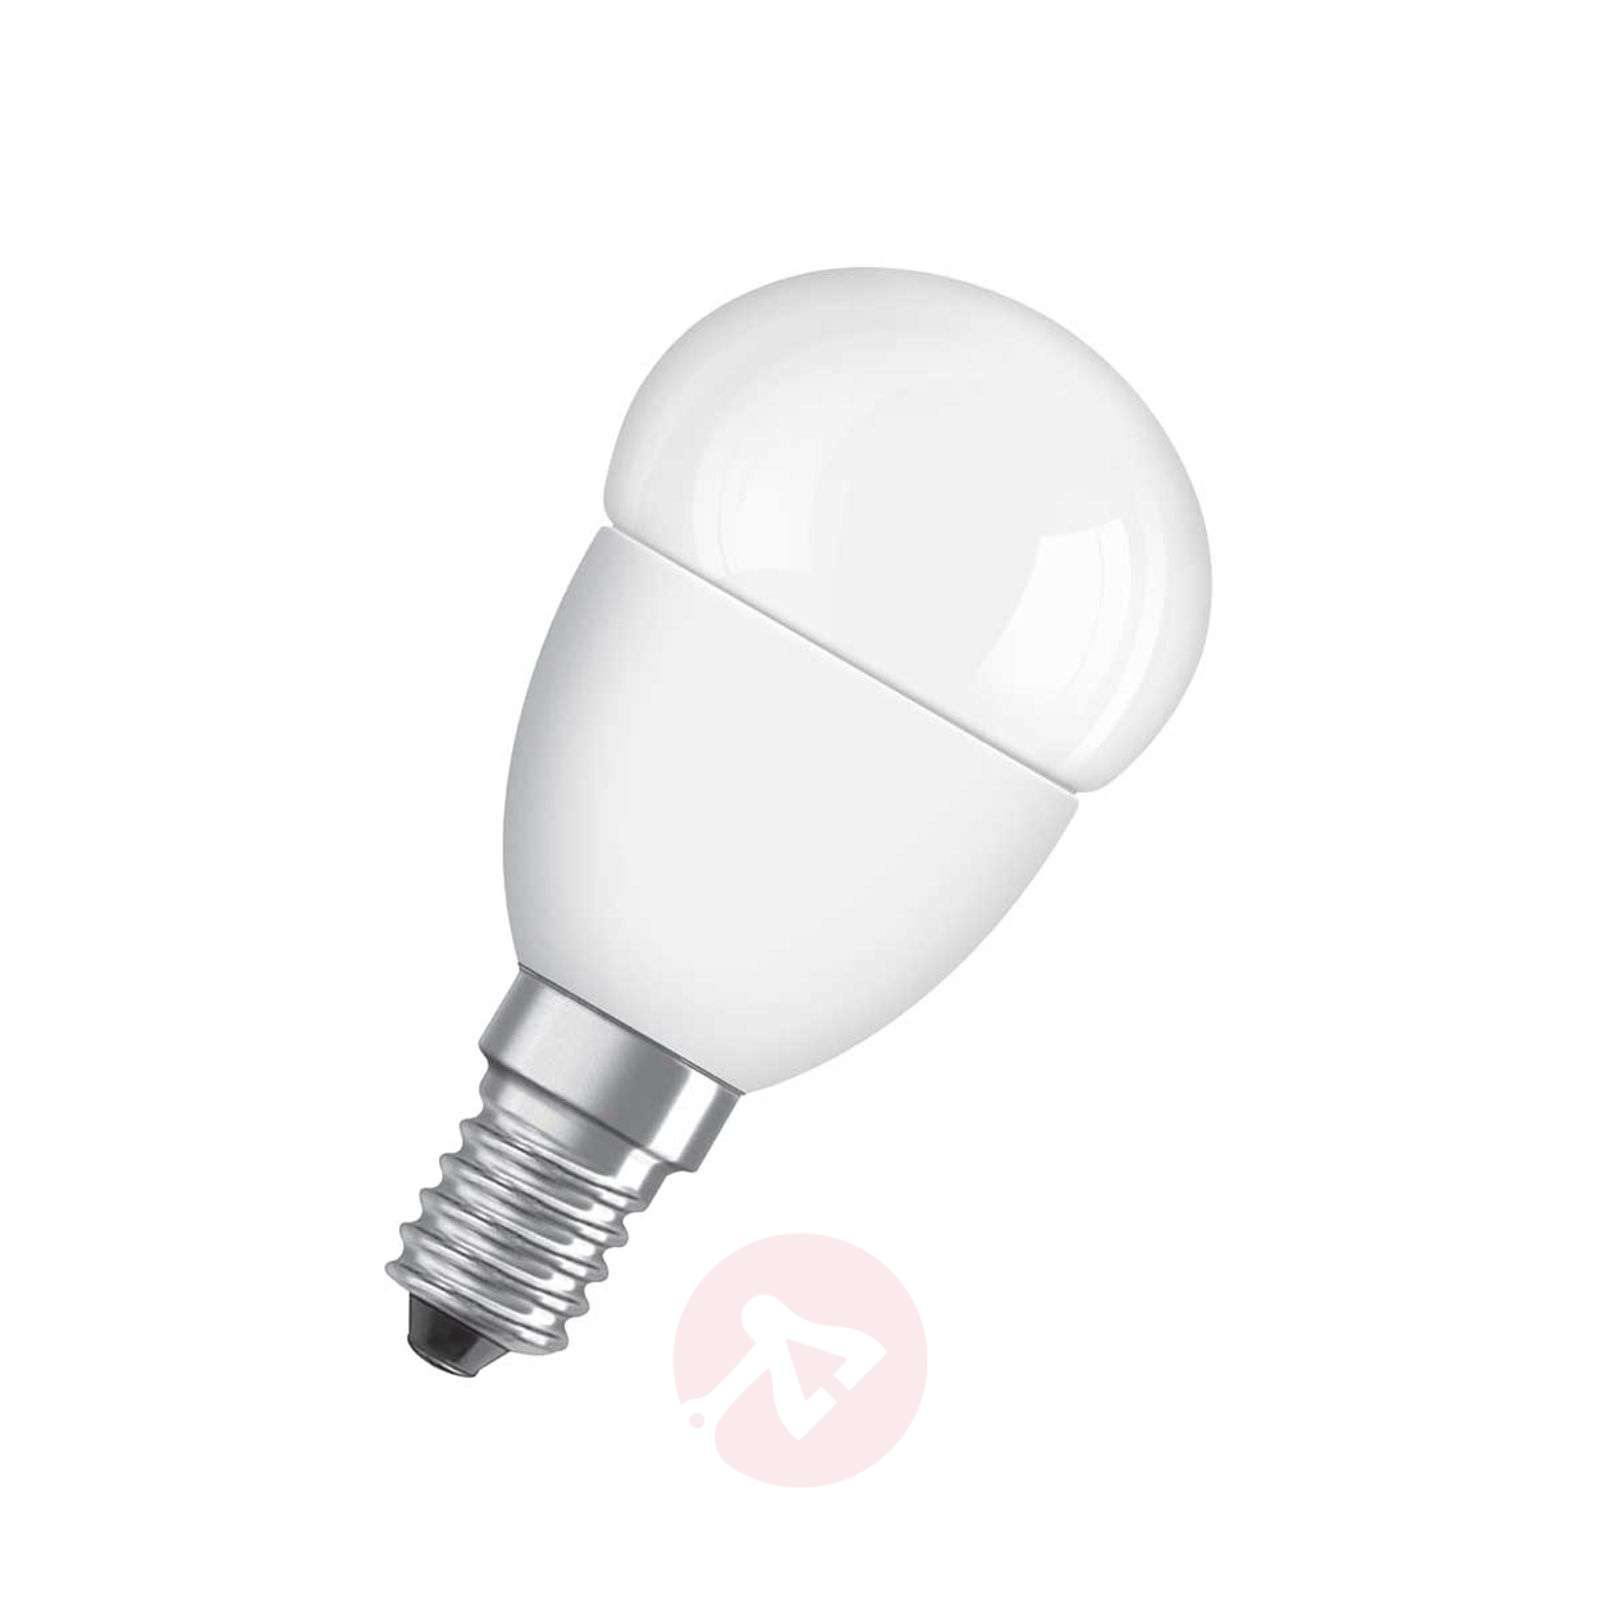 E14 5,3W 827 LED tear bulb Superstar matte dimmab.-7260673-01